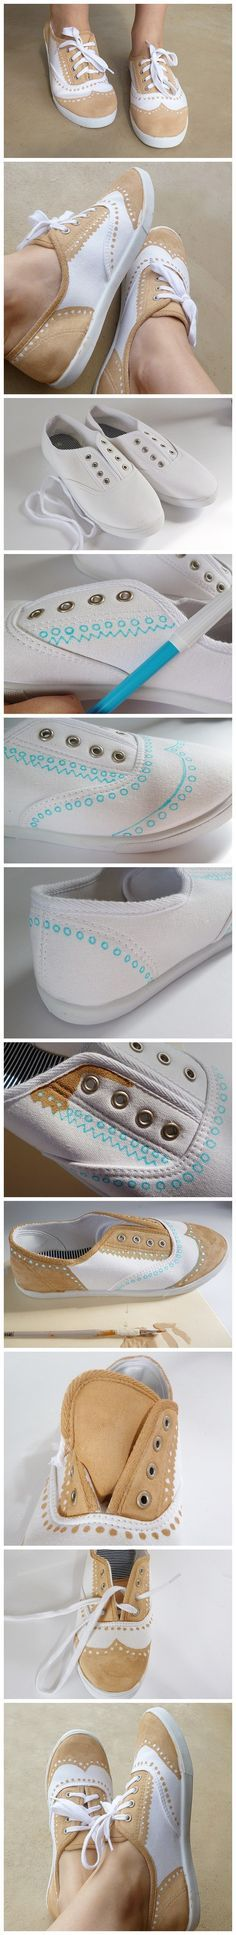 This is such a cool idea! and you can guarantee your oxfords will be unique!